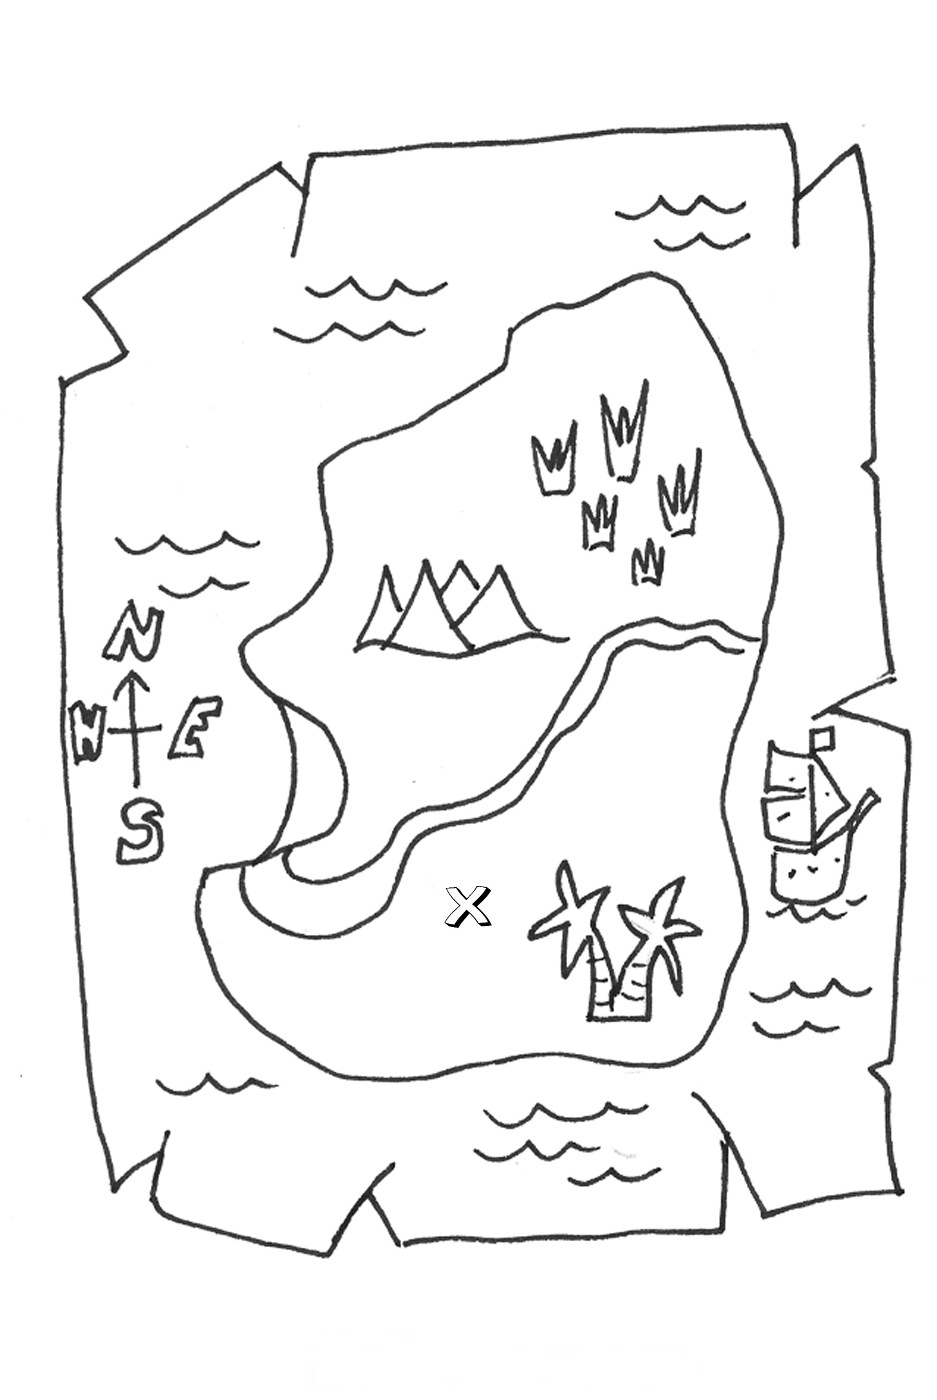 teasure map coloring page